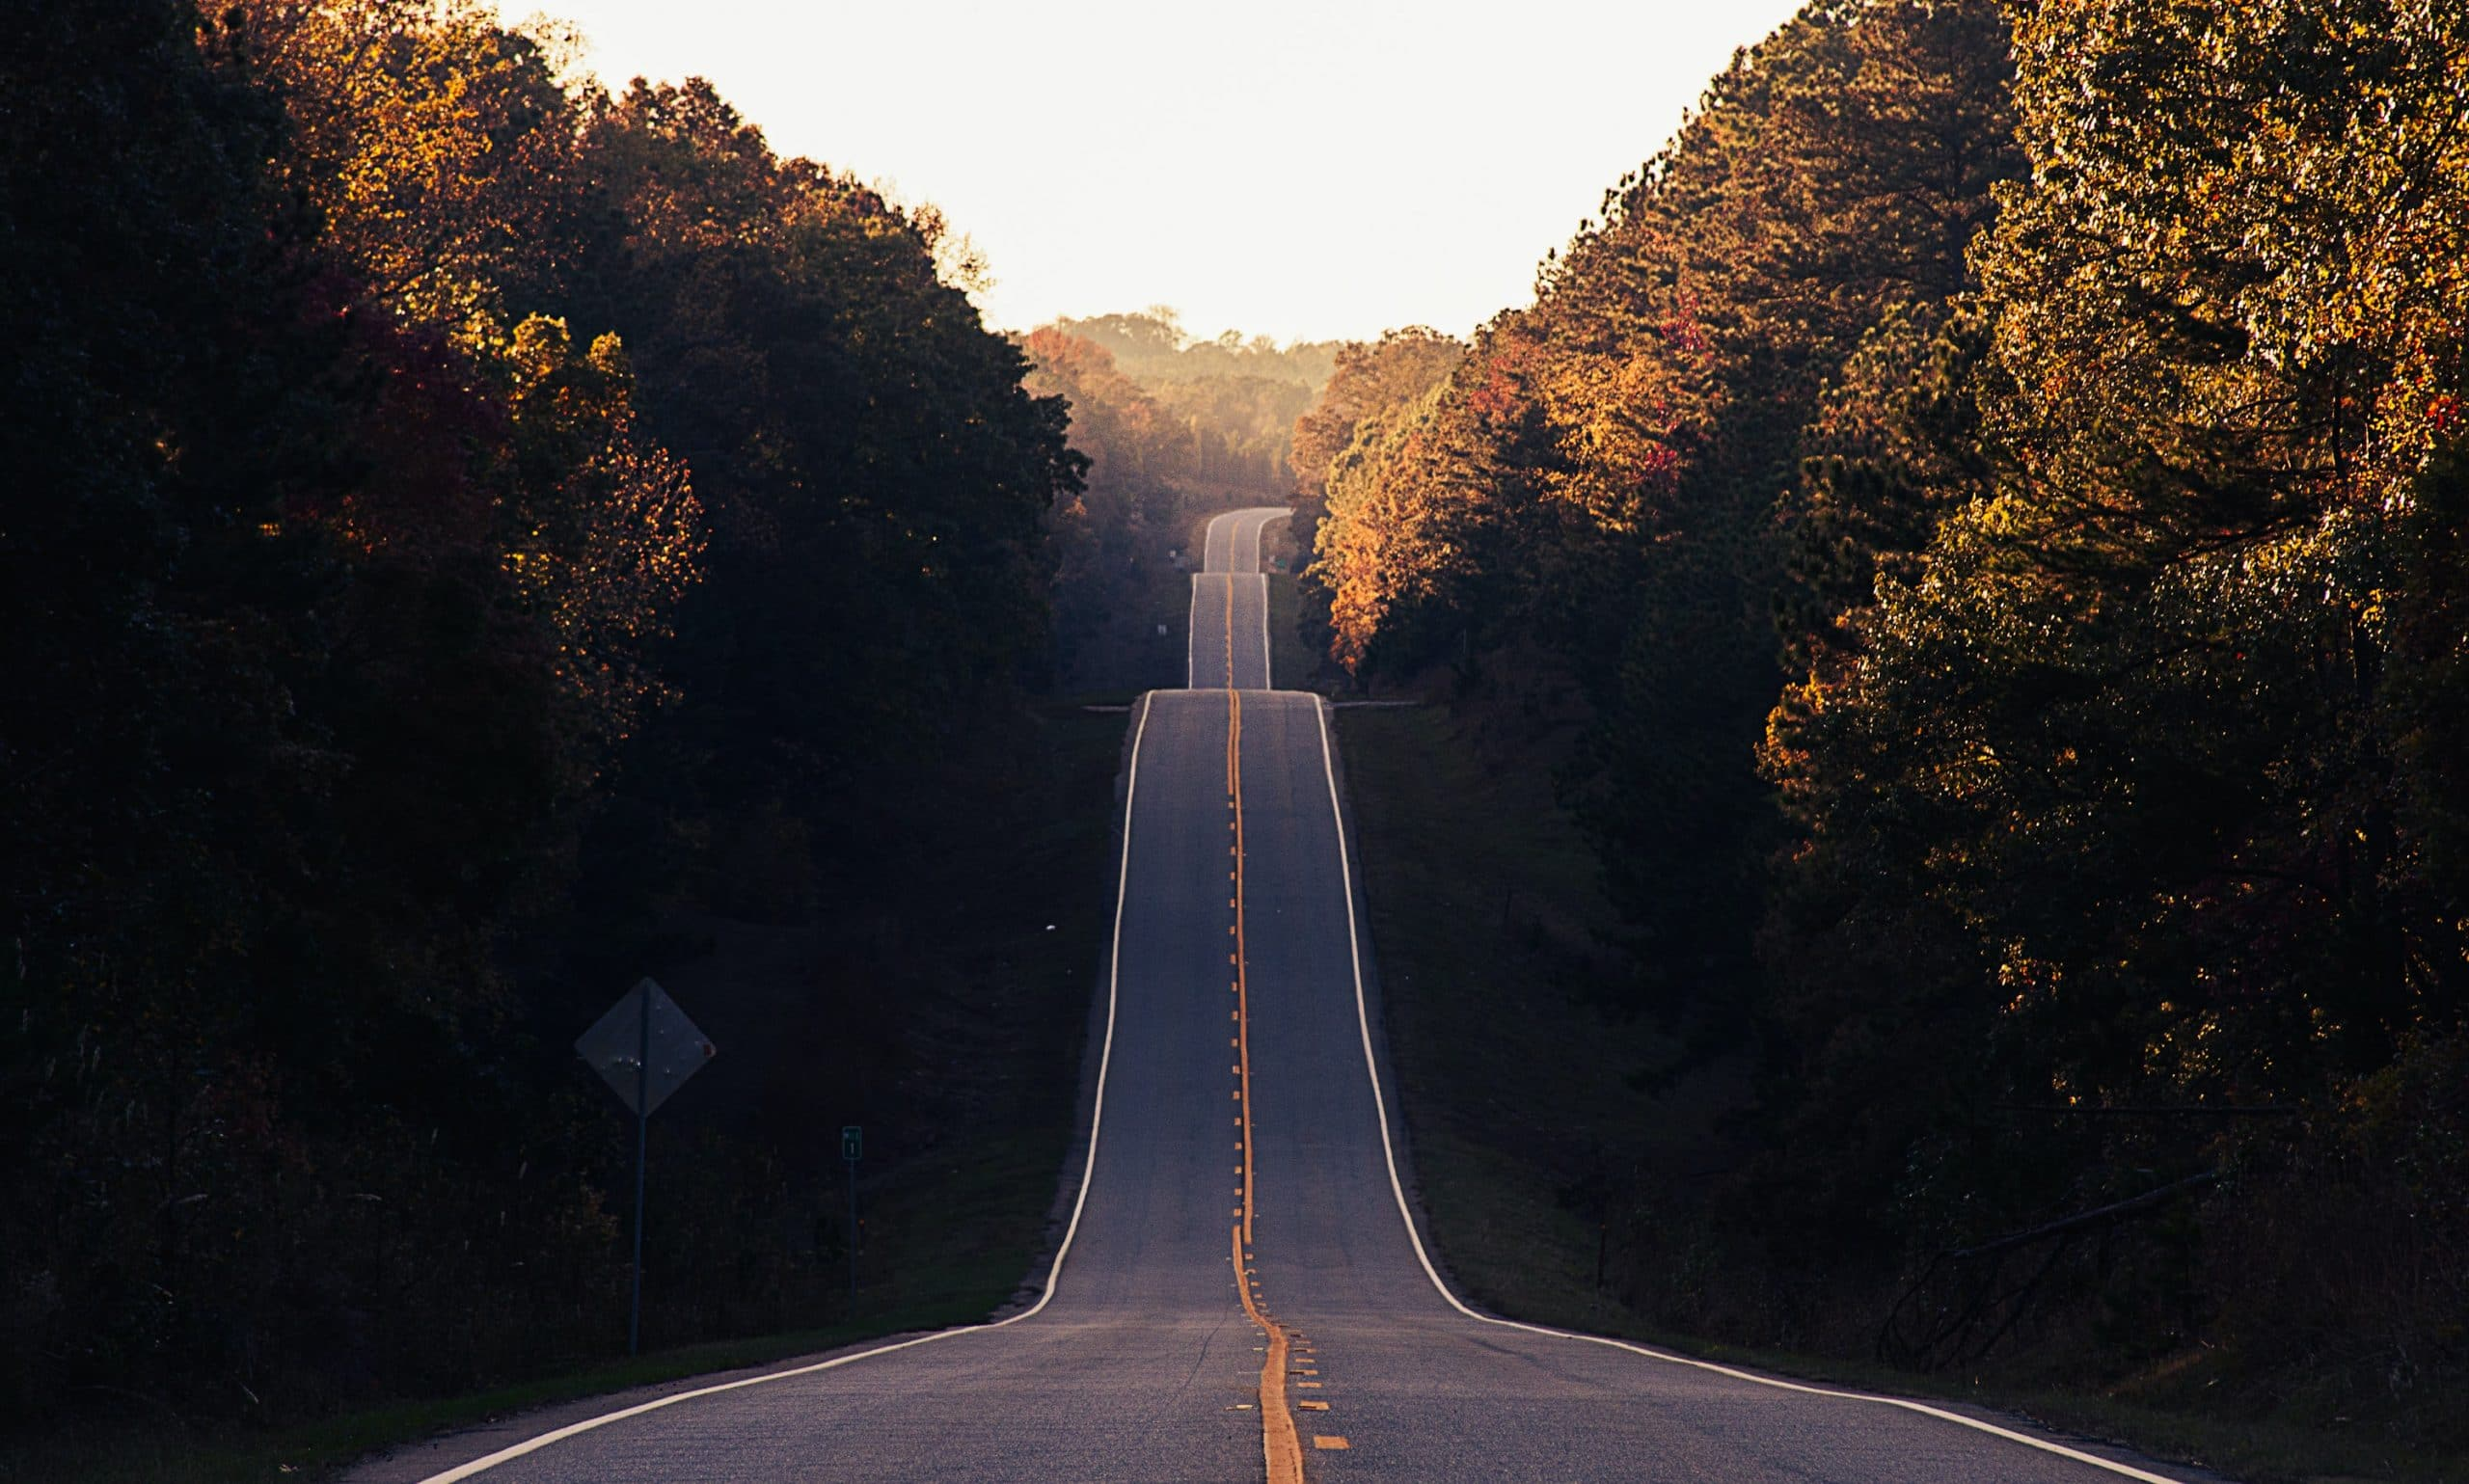 Road with hills